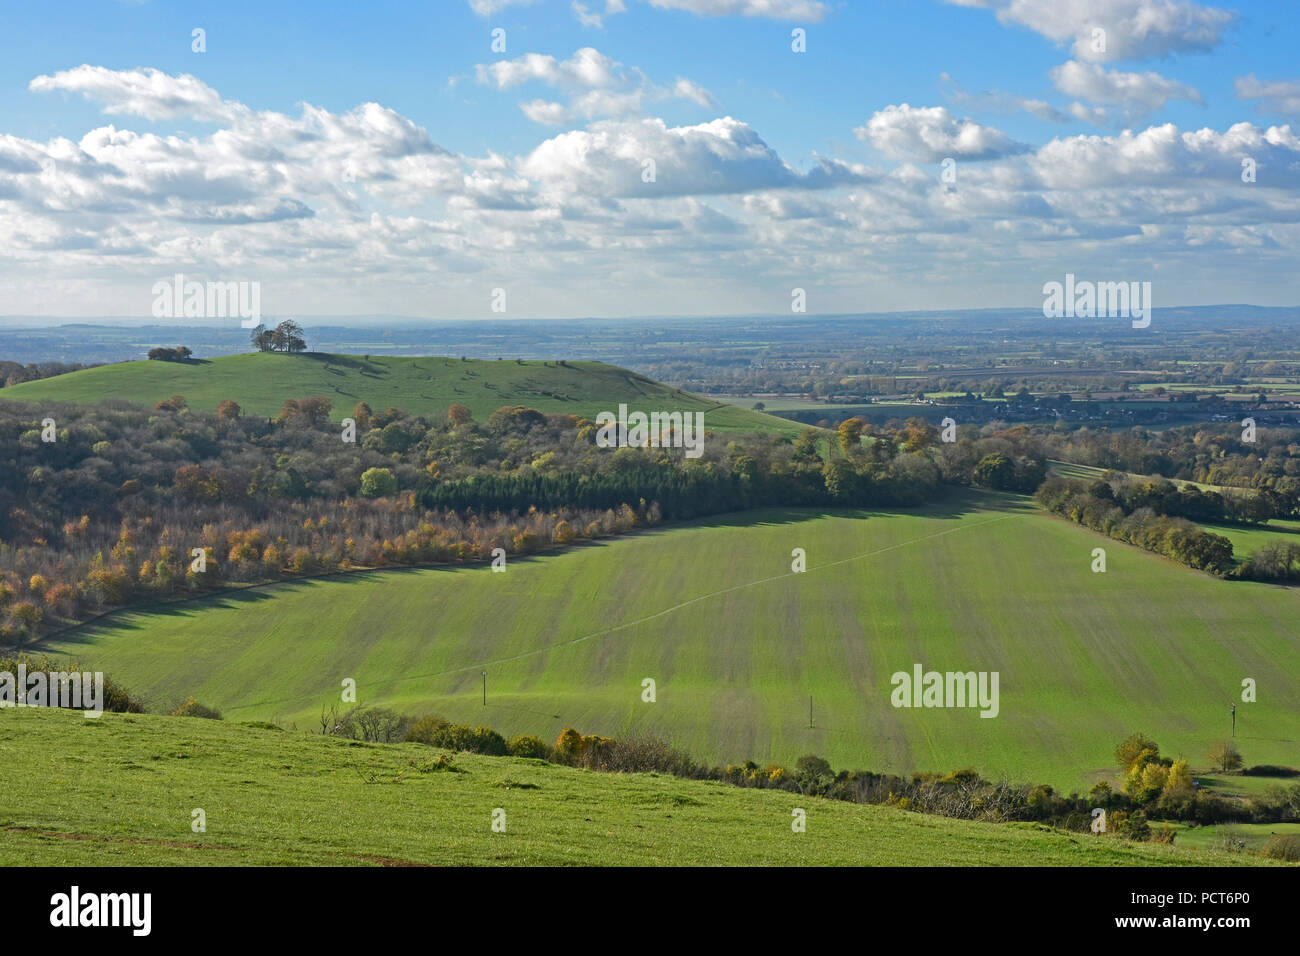 Bucks - Chiltern Hills - view from Coombe Hill to Beacon Hill - and Aylesbury Plain beyond. Early autumn colours - sunlight - Stock Image